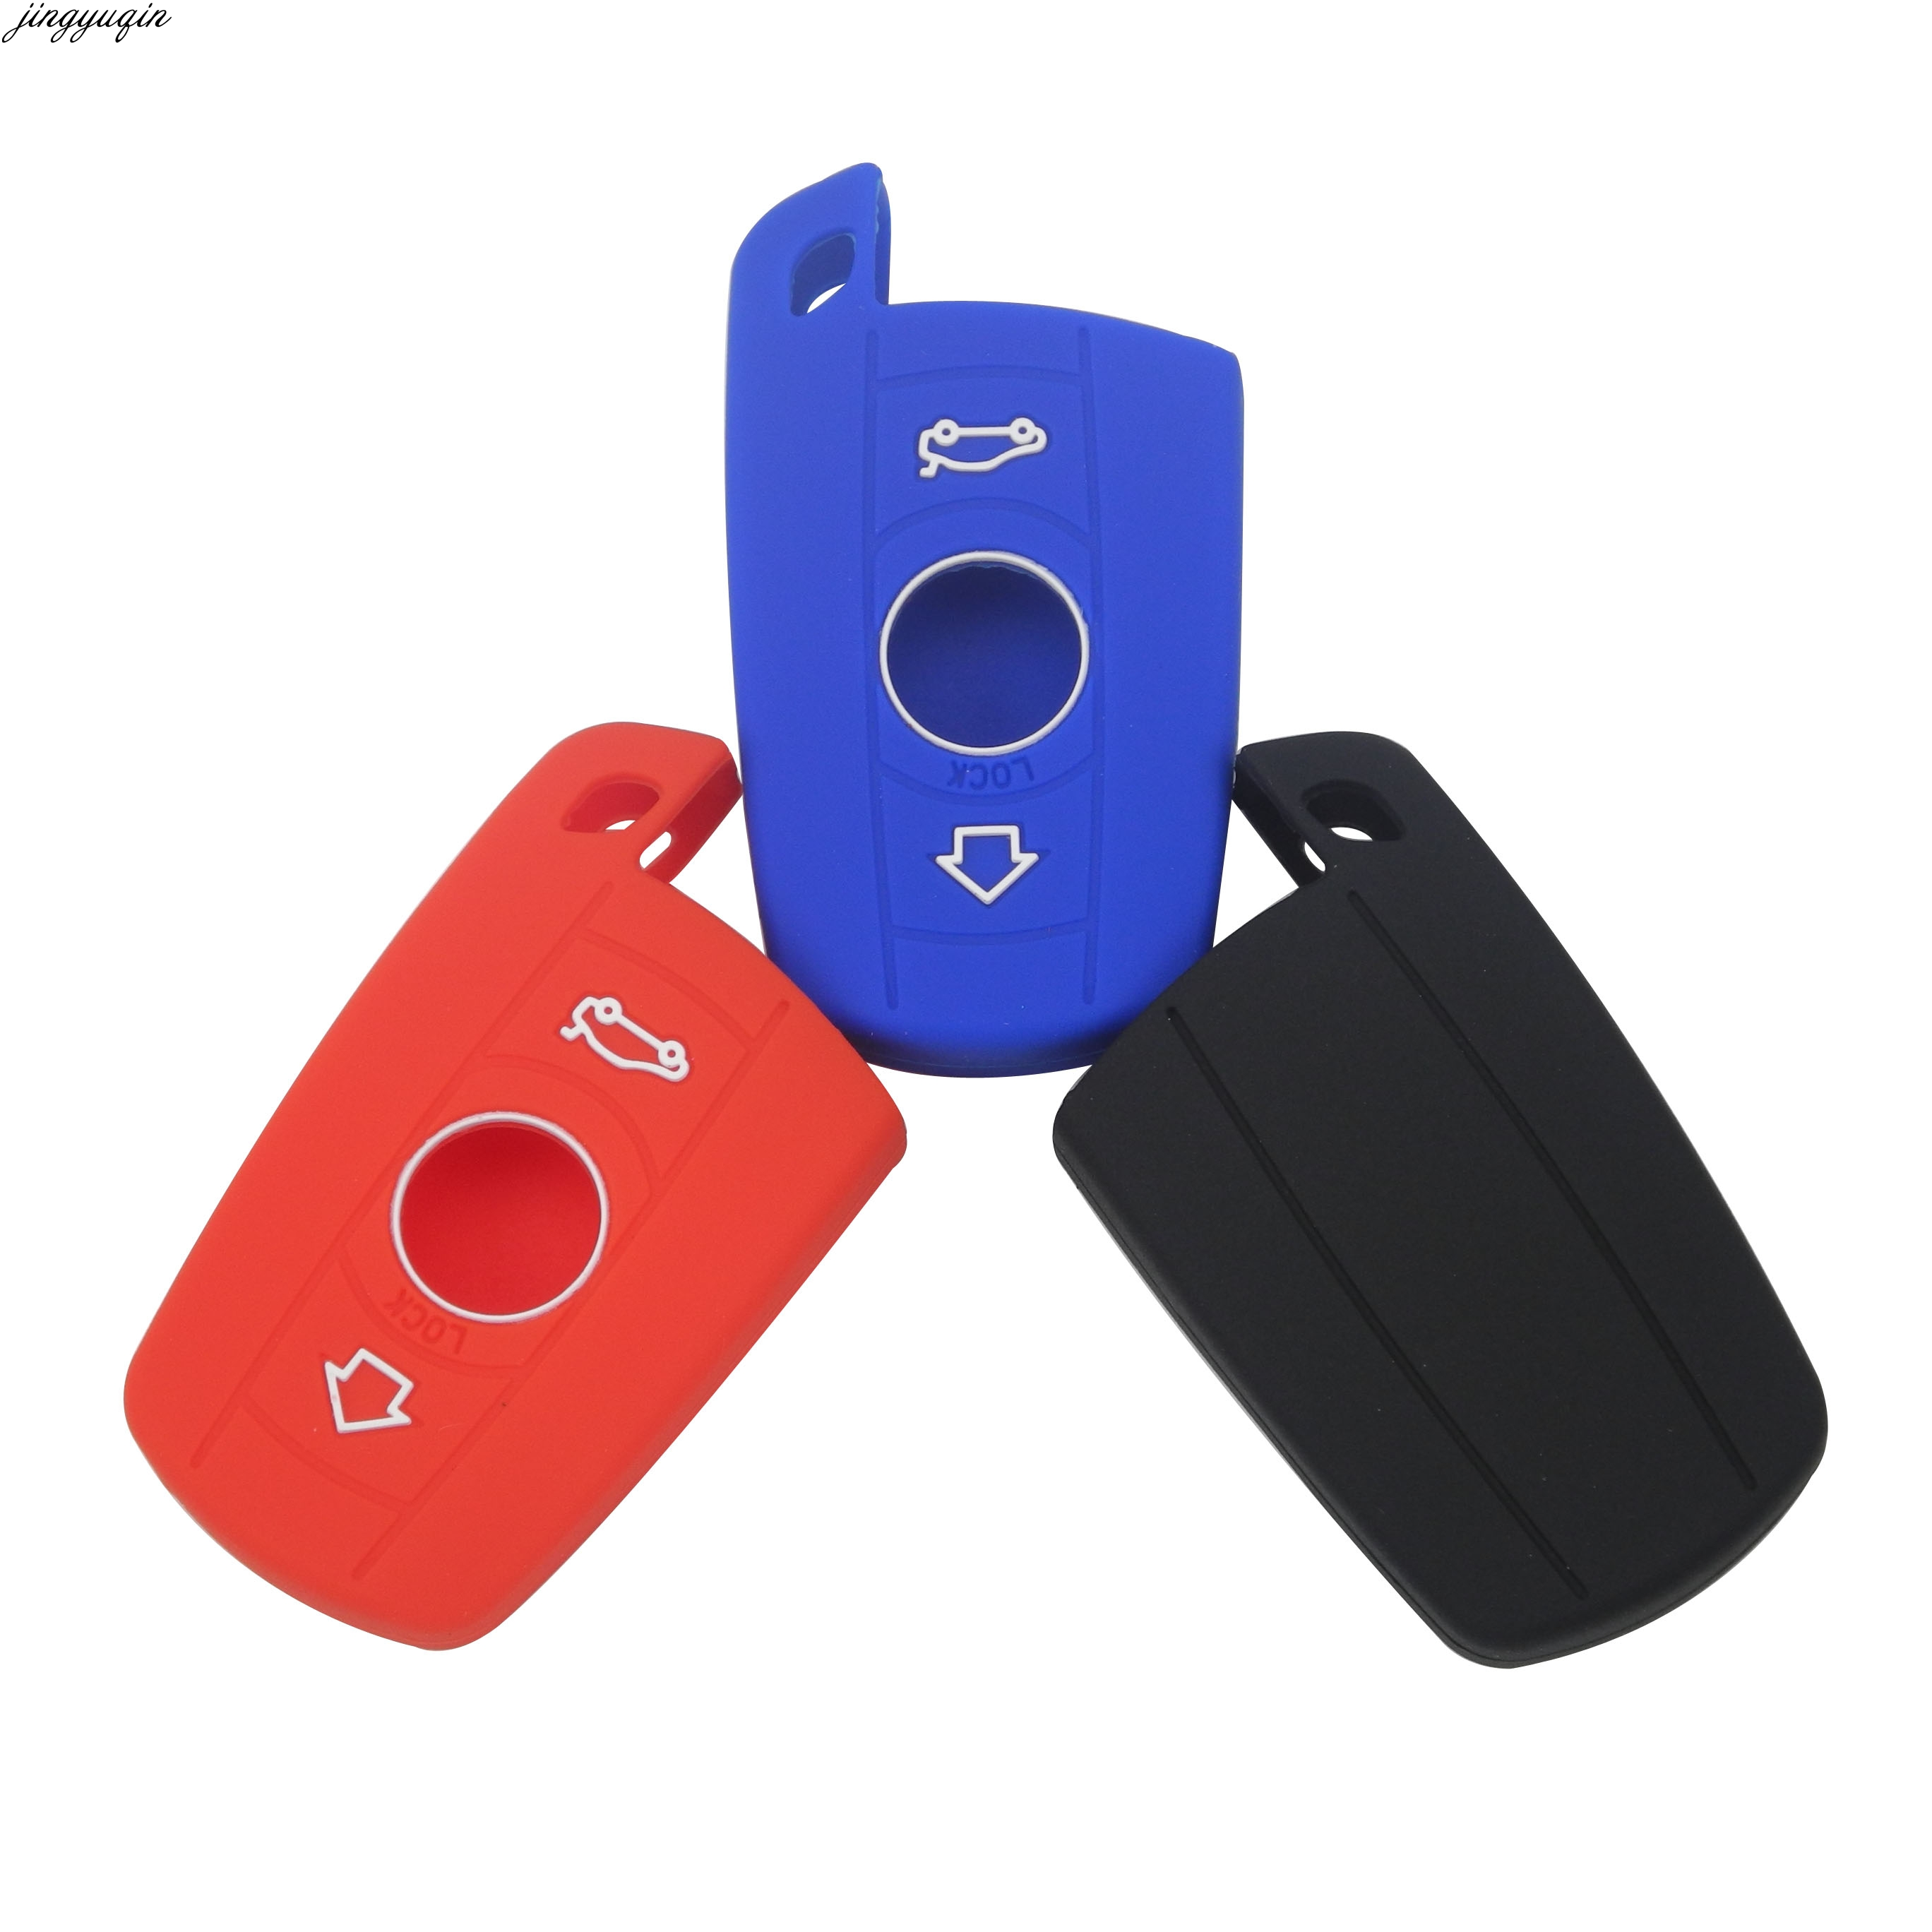 Car Key Case For BMW E90 E60 E70 E87 3 5 6 Series M3 M5 X1 X5 X6 Z4 KeyChain Cover Remote Controller Key Holder Silicone